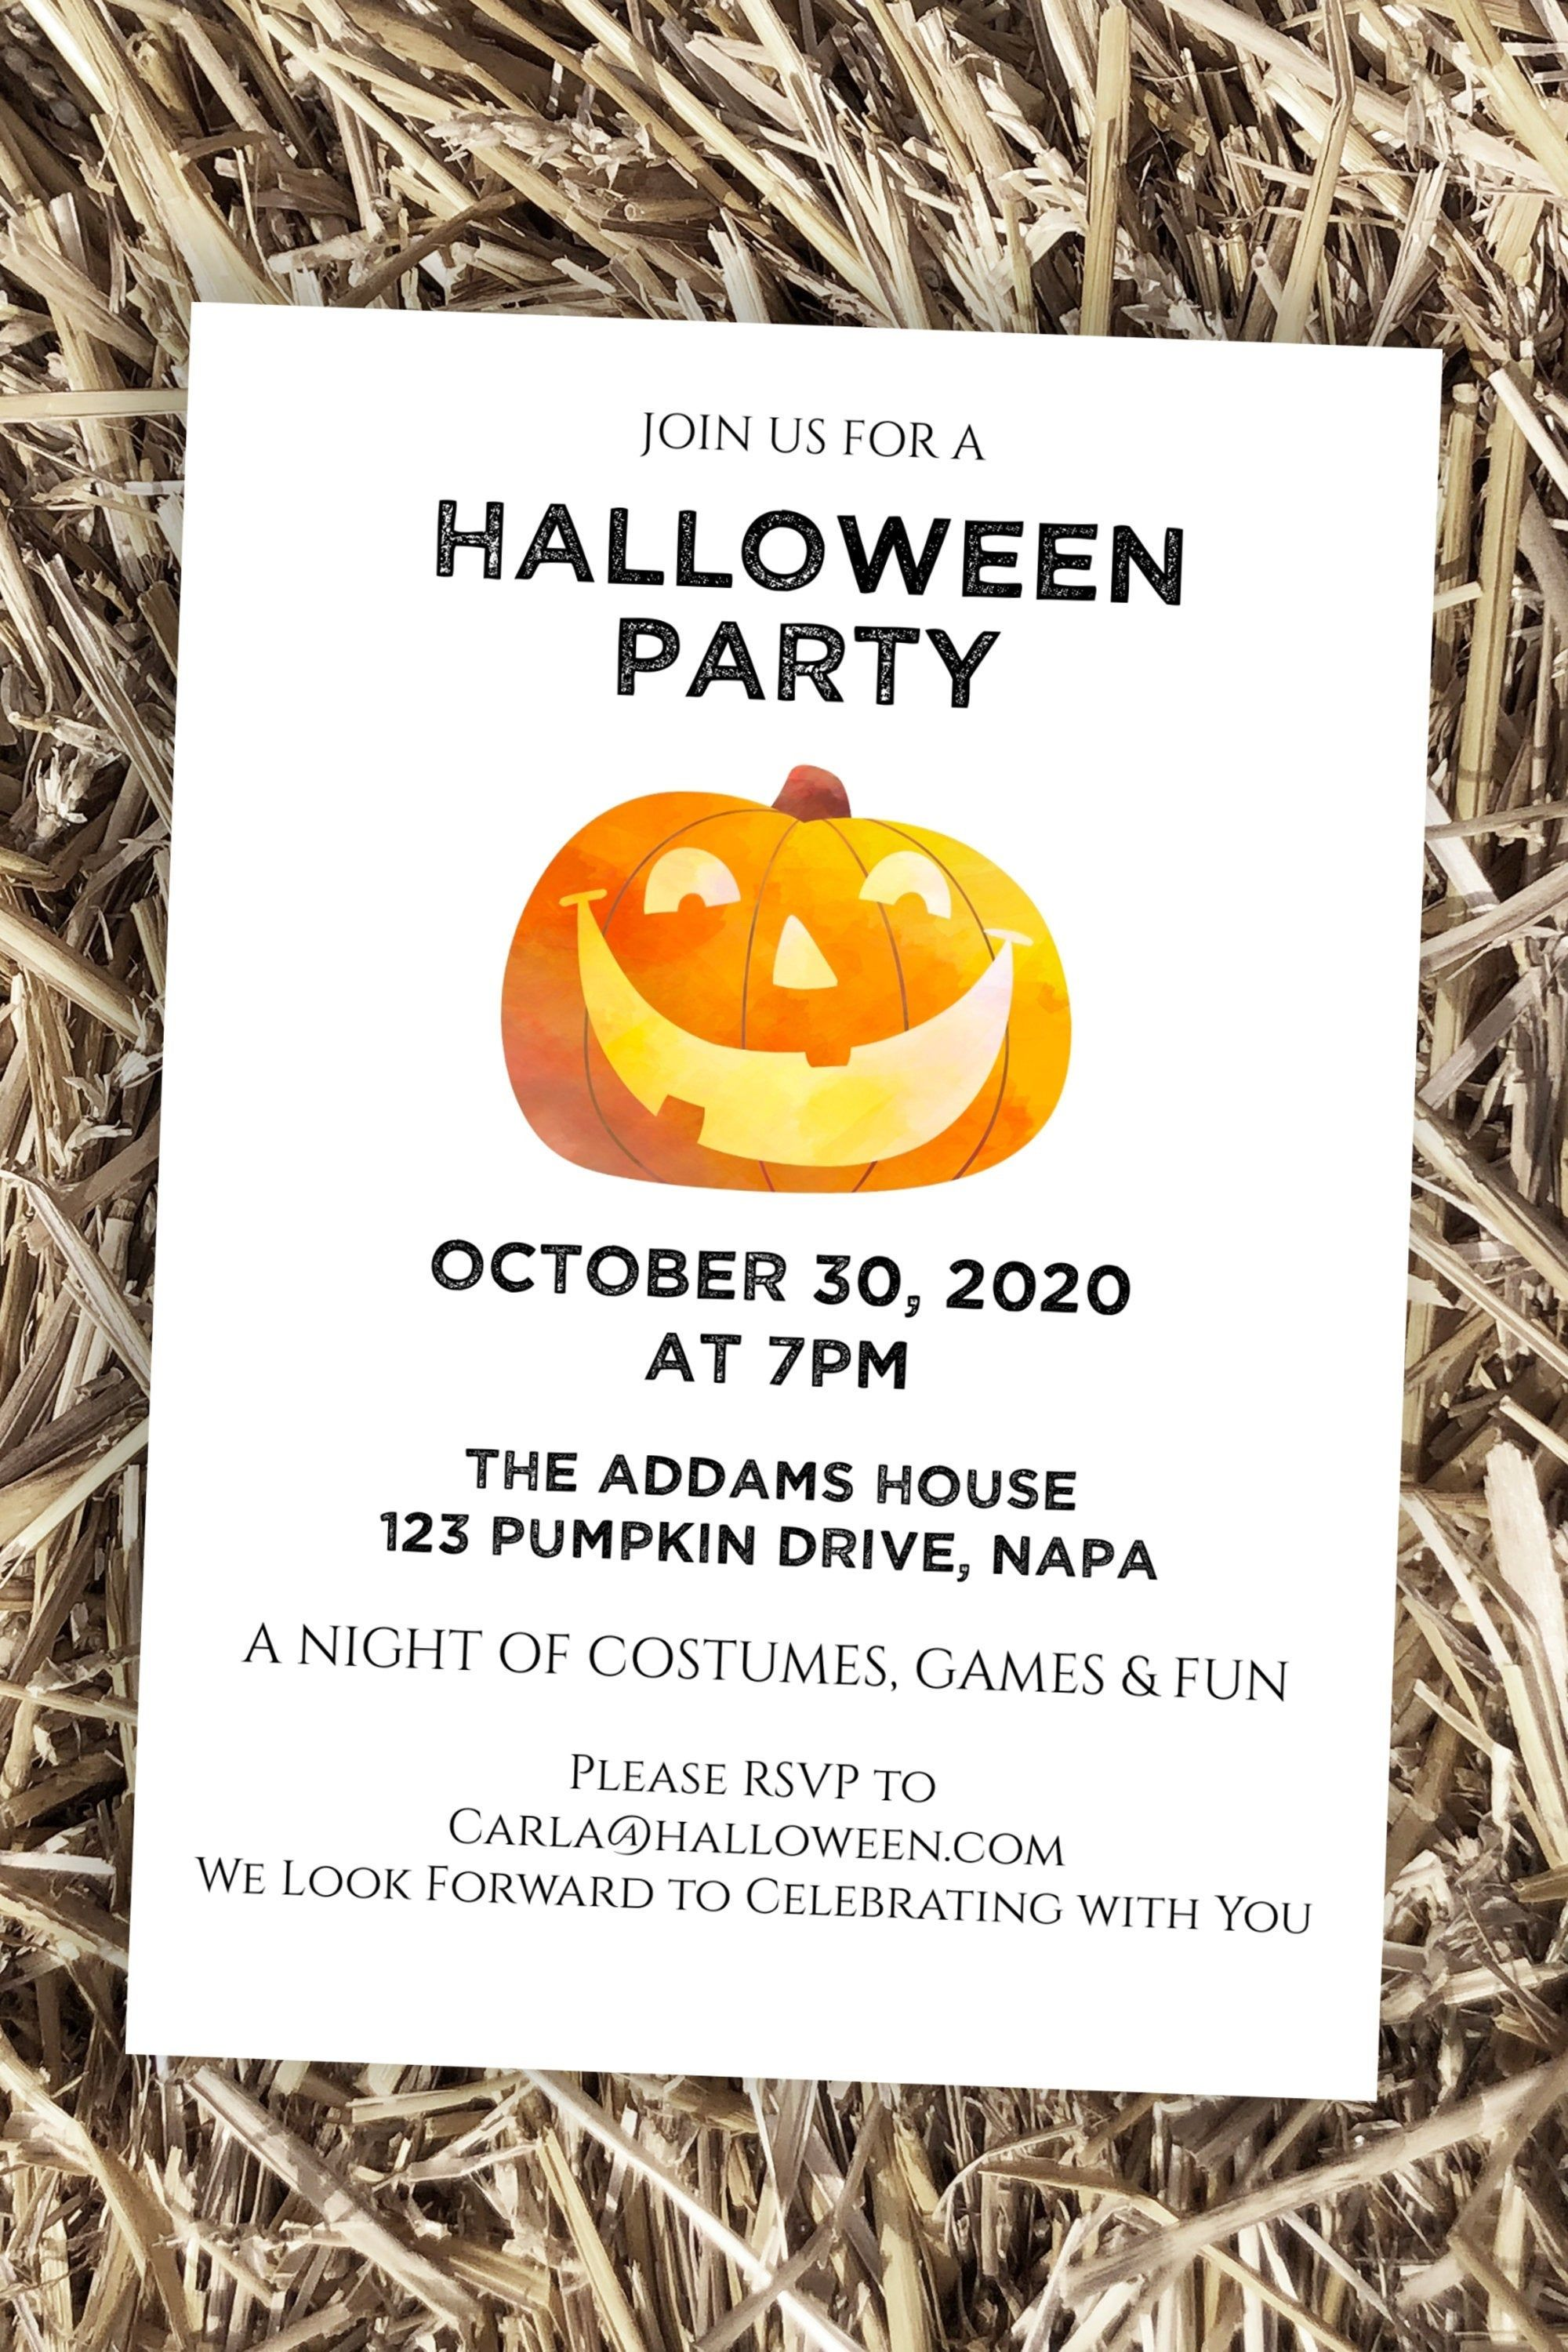 Halloween Party Invitation Virtual Party Invite Zoom Halloween Party Pumpkin Editabl Halloween Party Invitations Halloween Invitation Template Virtual Party